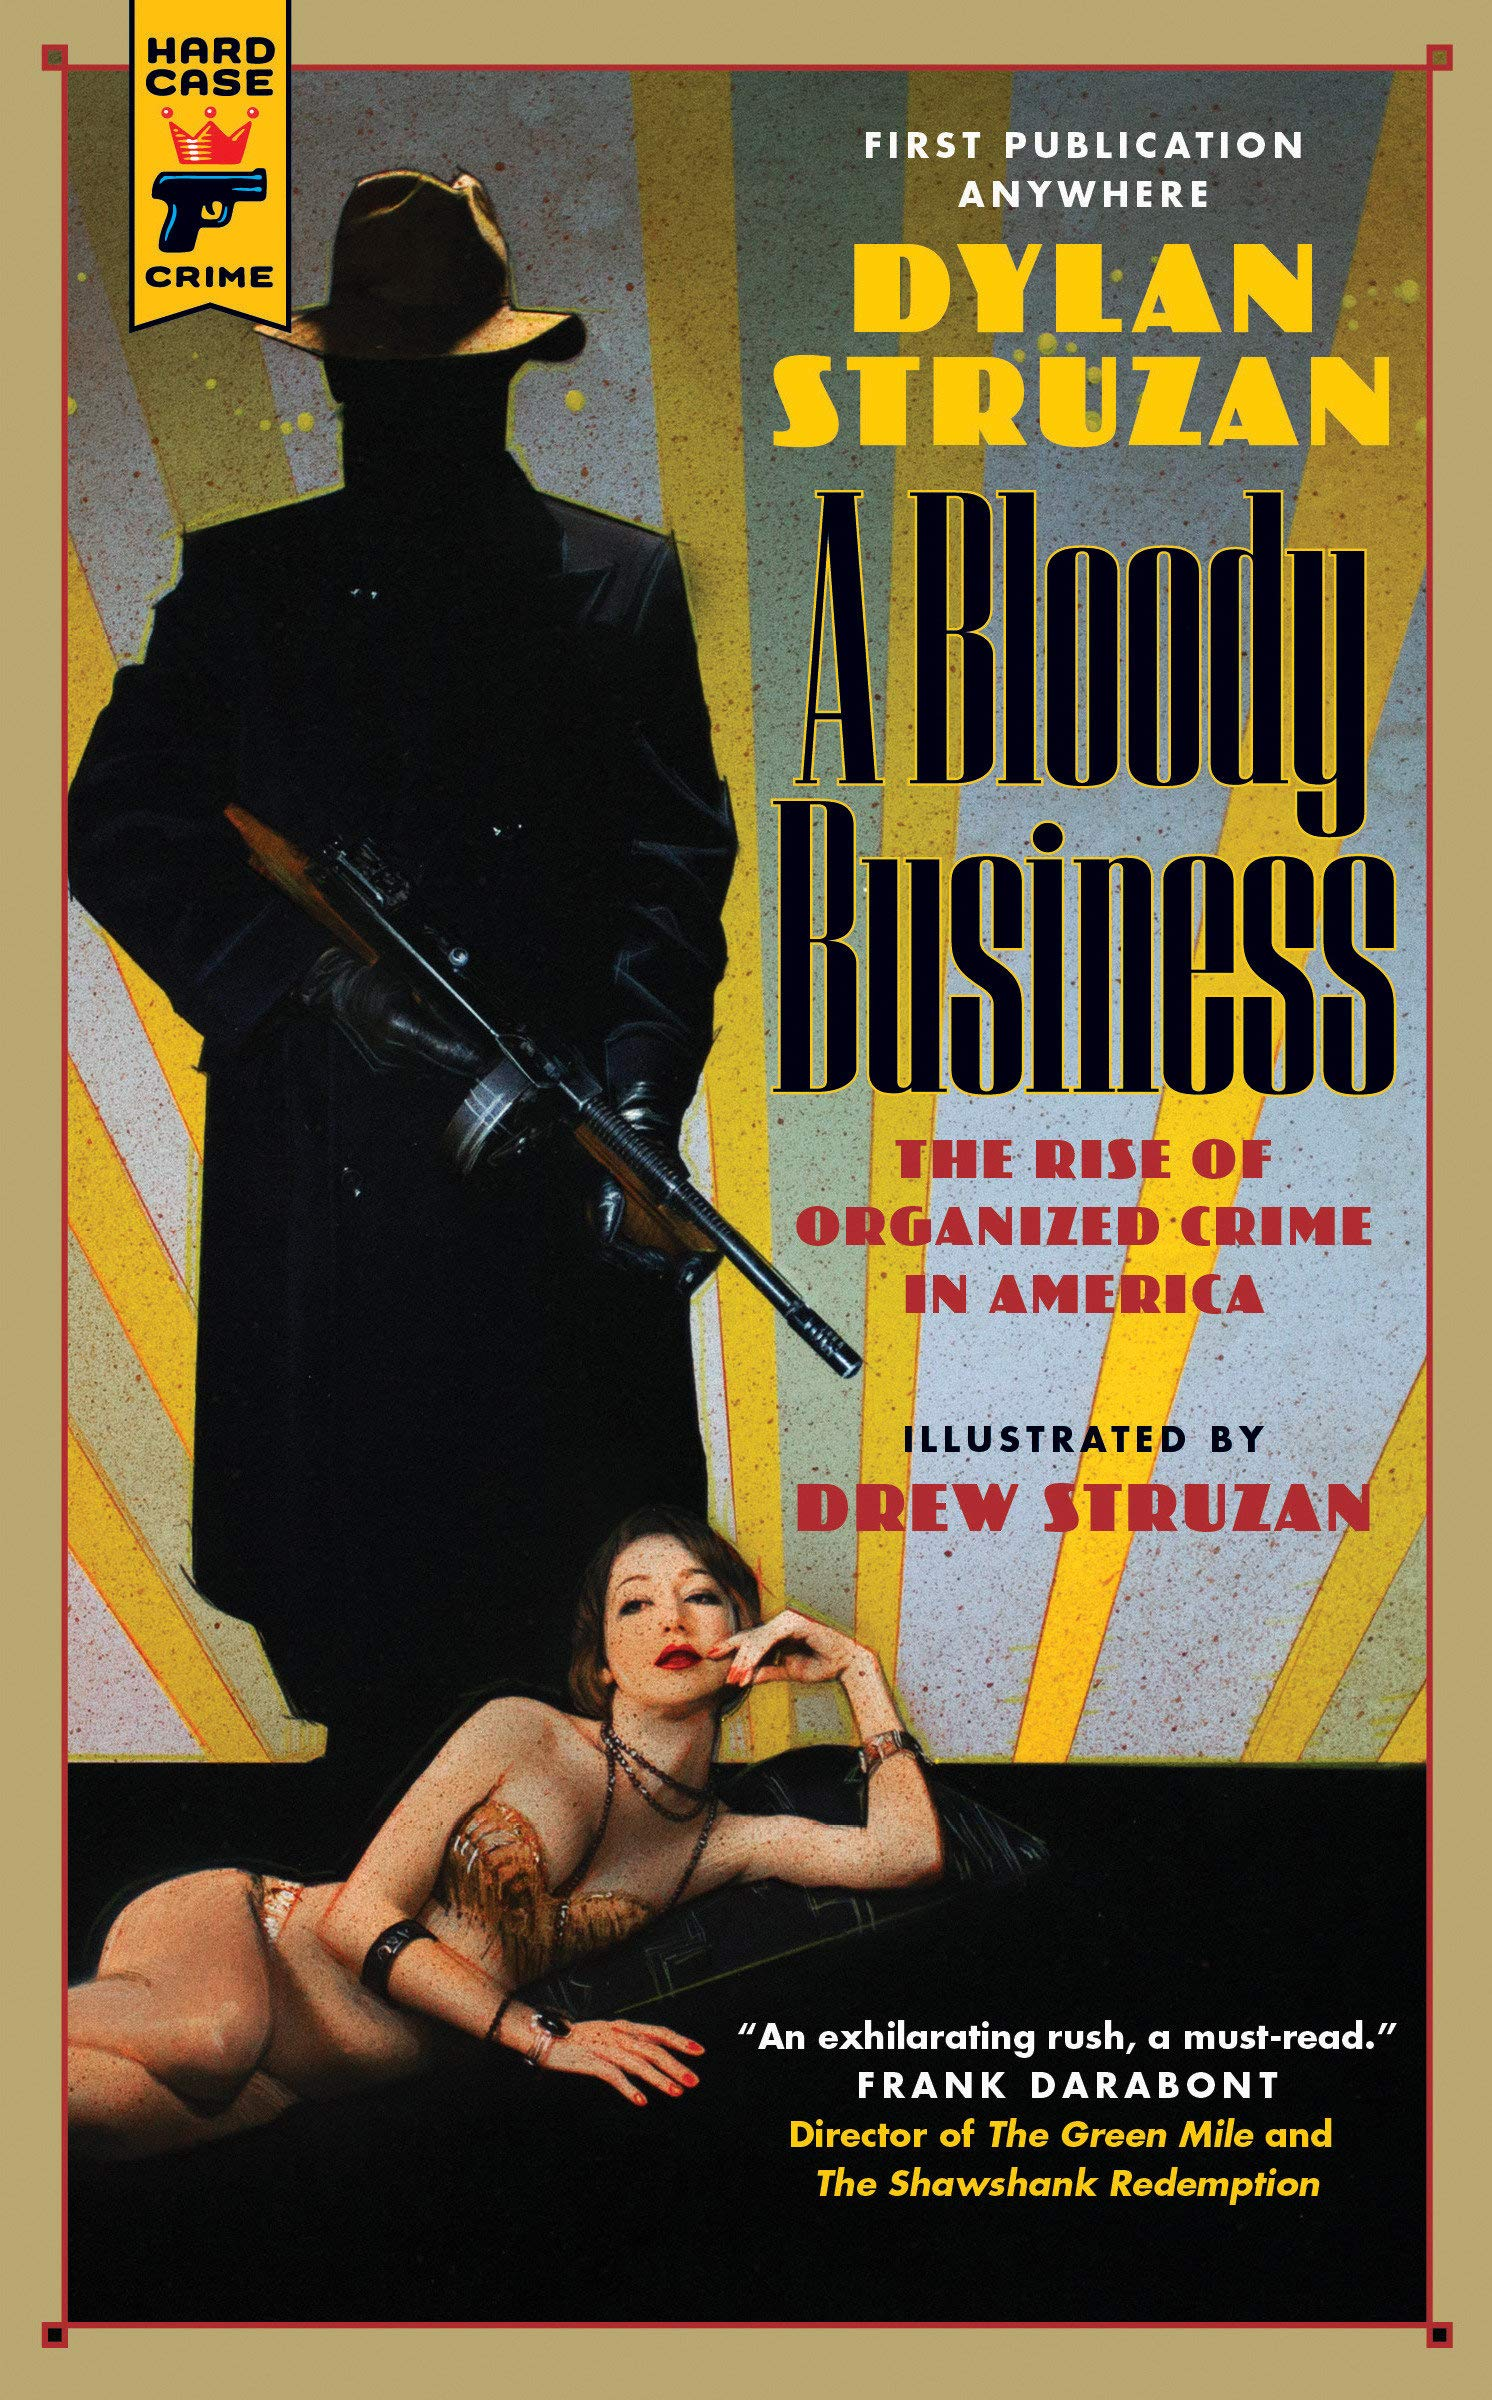 Friday Reads: A Bloody Business by DylanStruzan